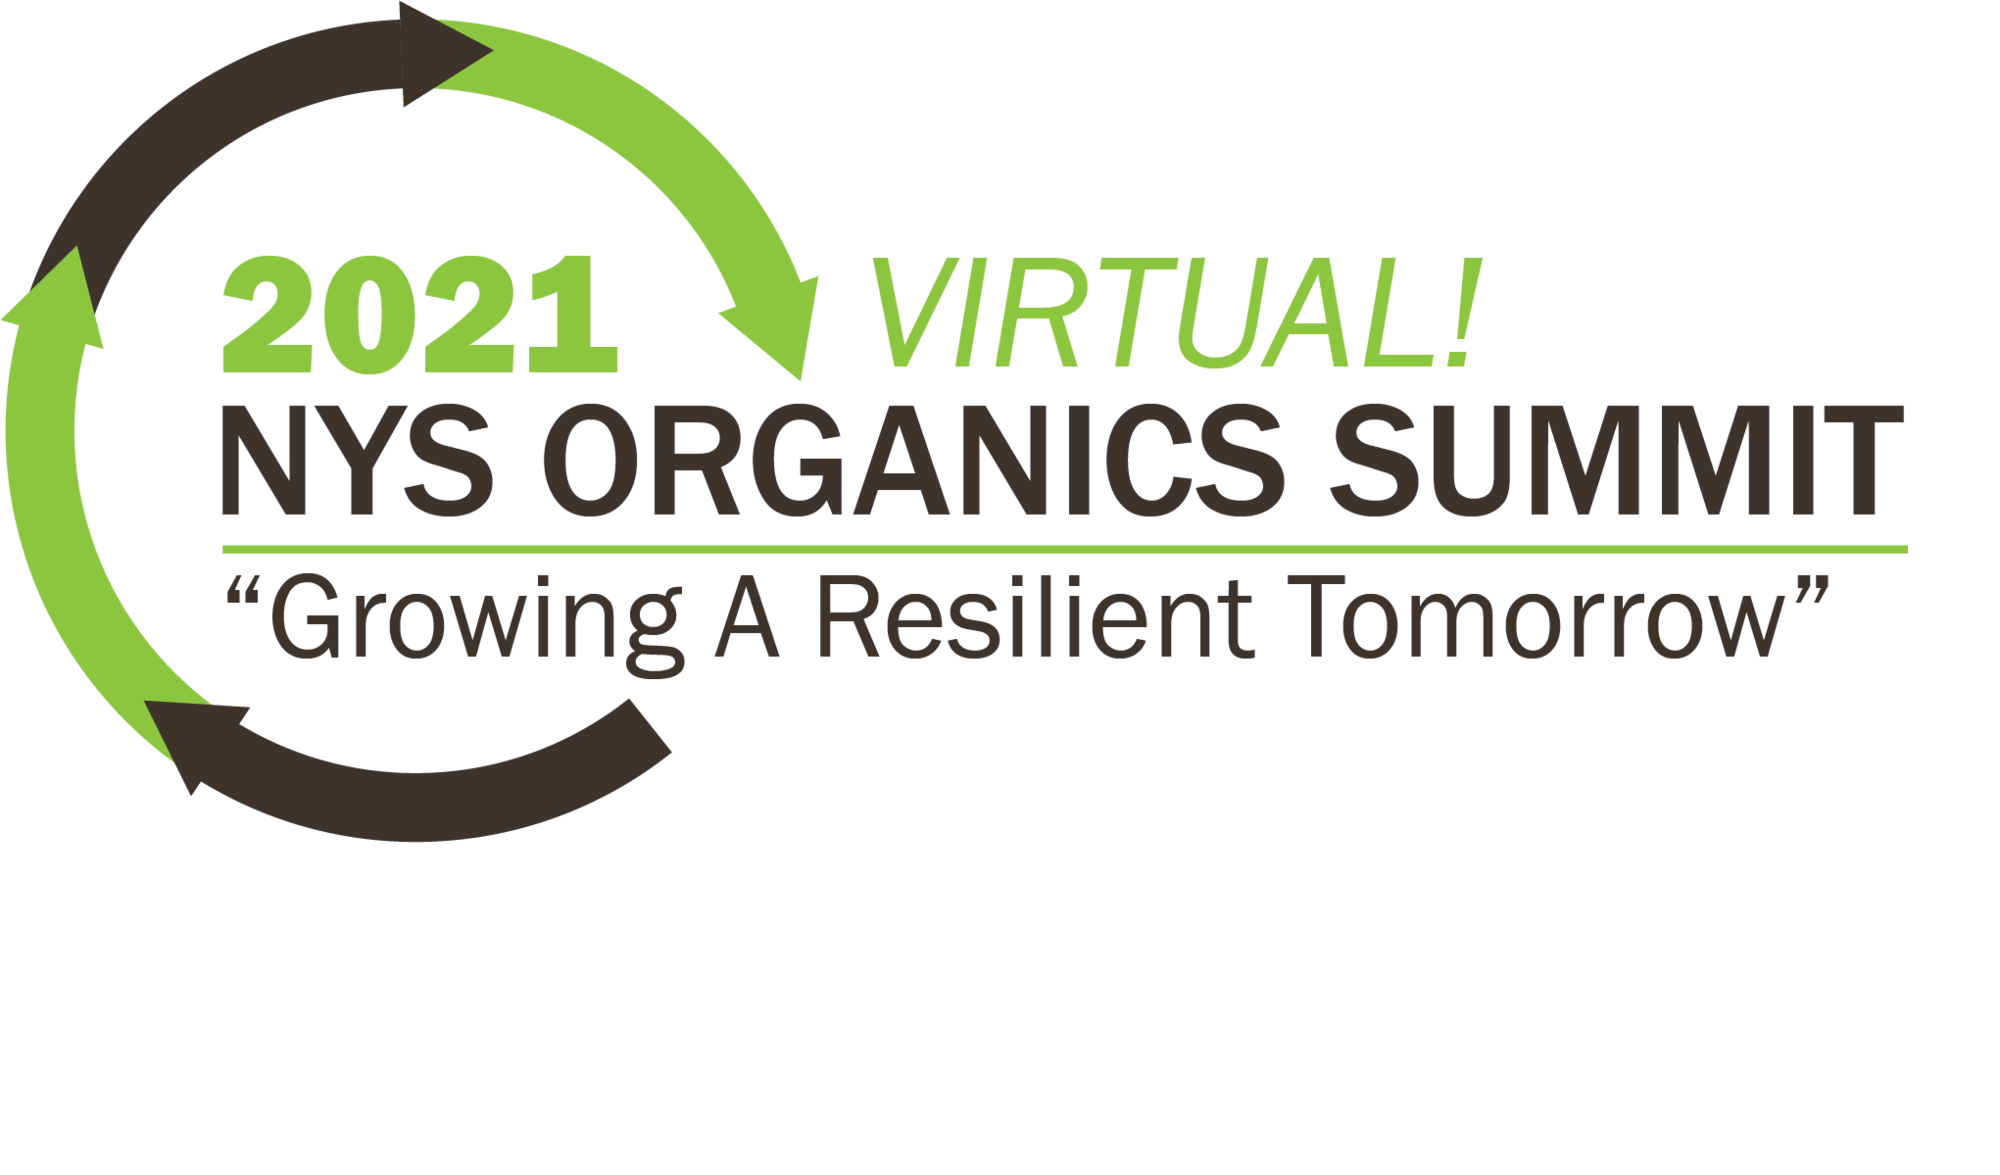 NYS Organics Summit - Growing a Resilient Tomorrow